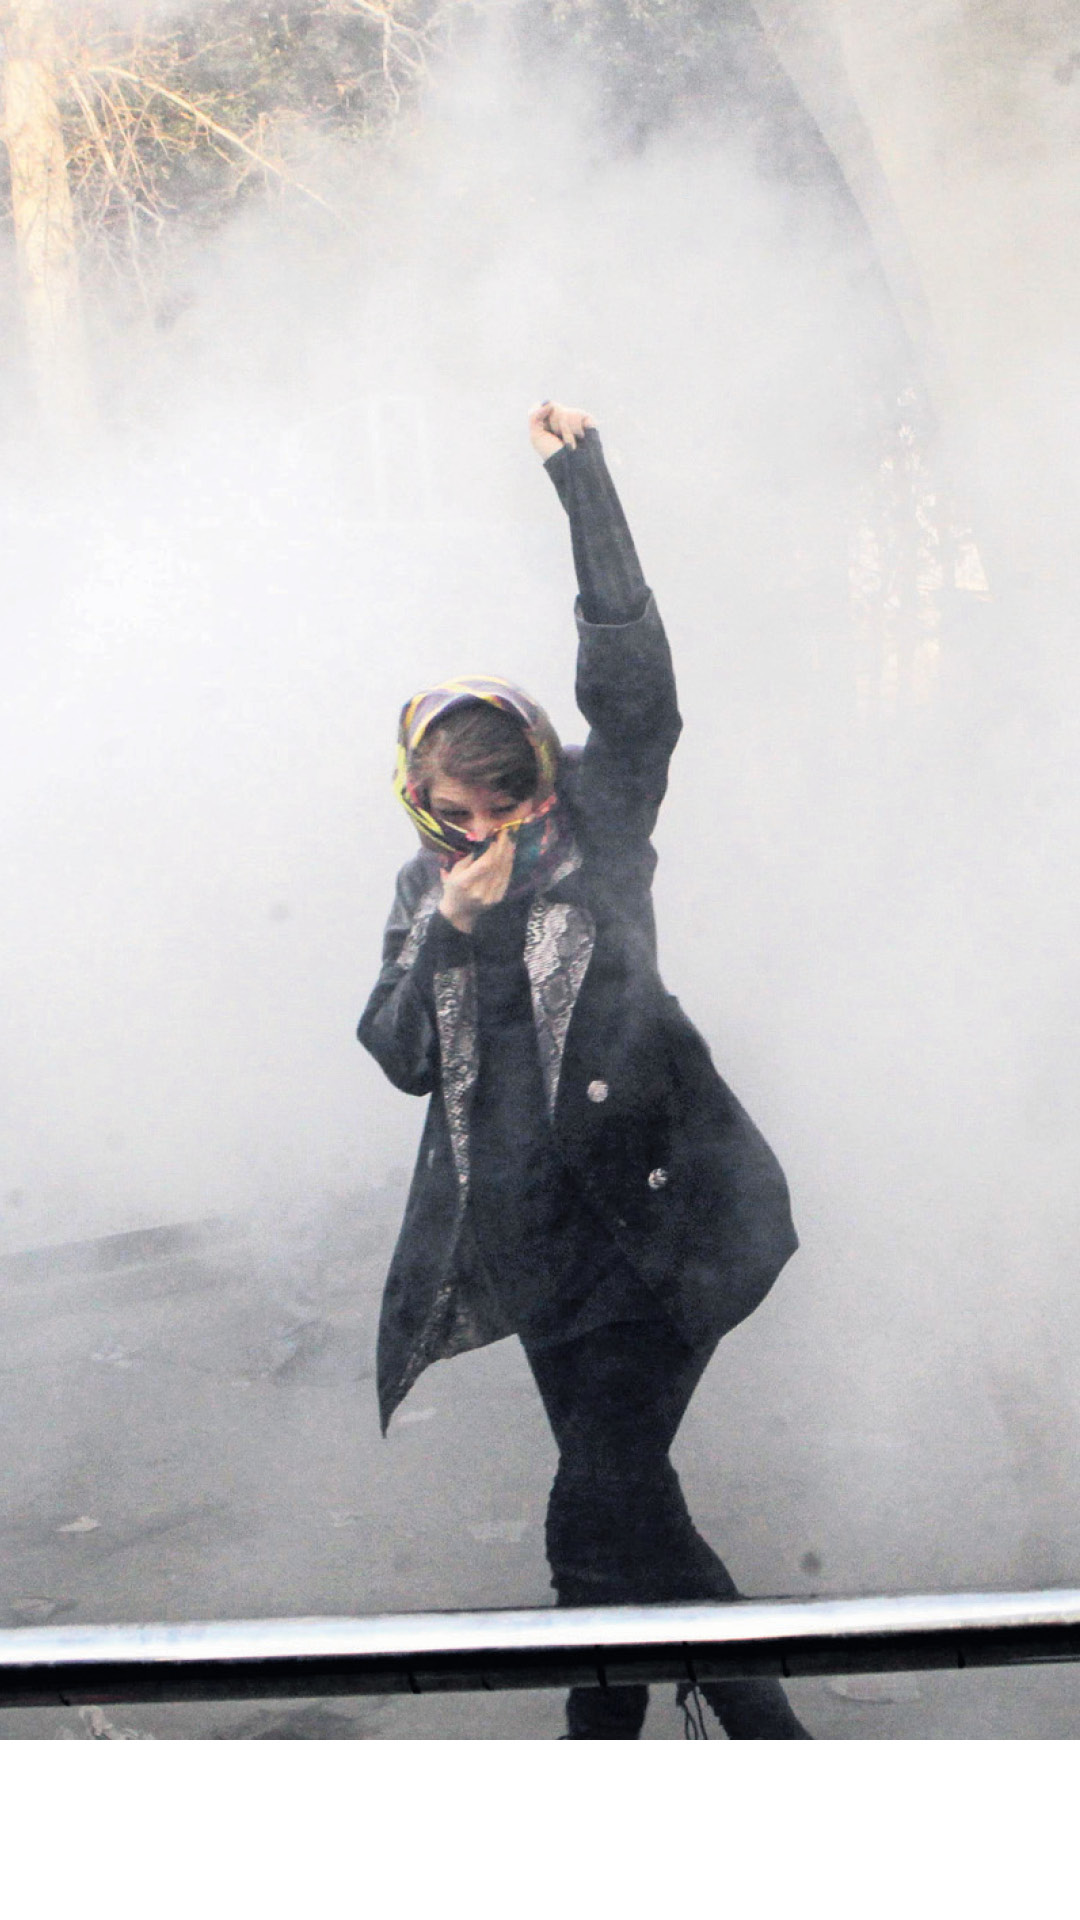 A protestor in Tehran in December 2017. Every protest generates claims that the regime is about to collapse